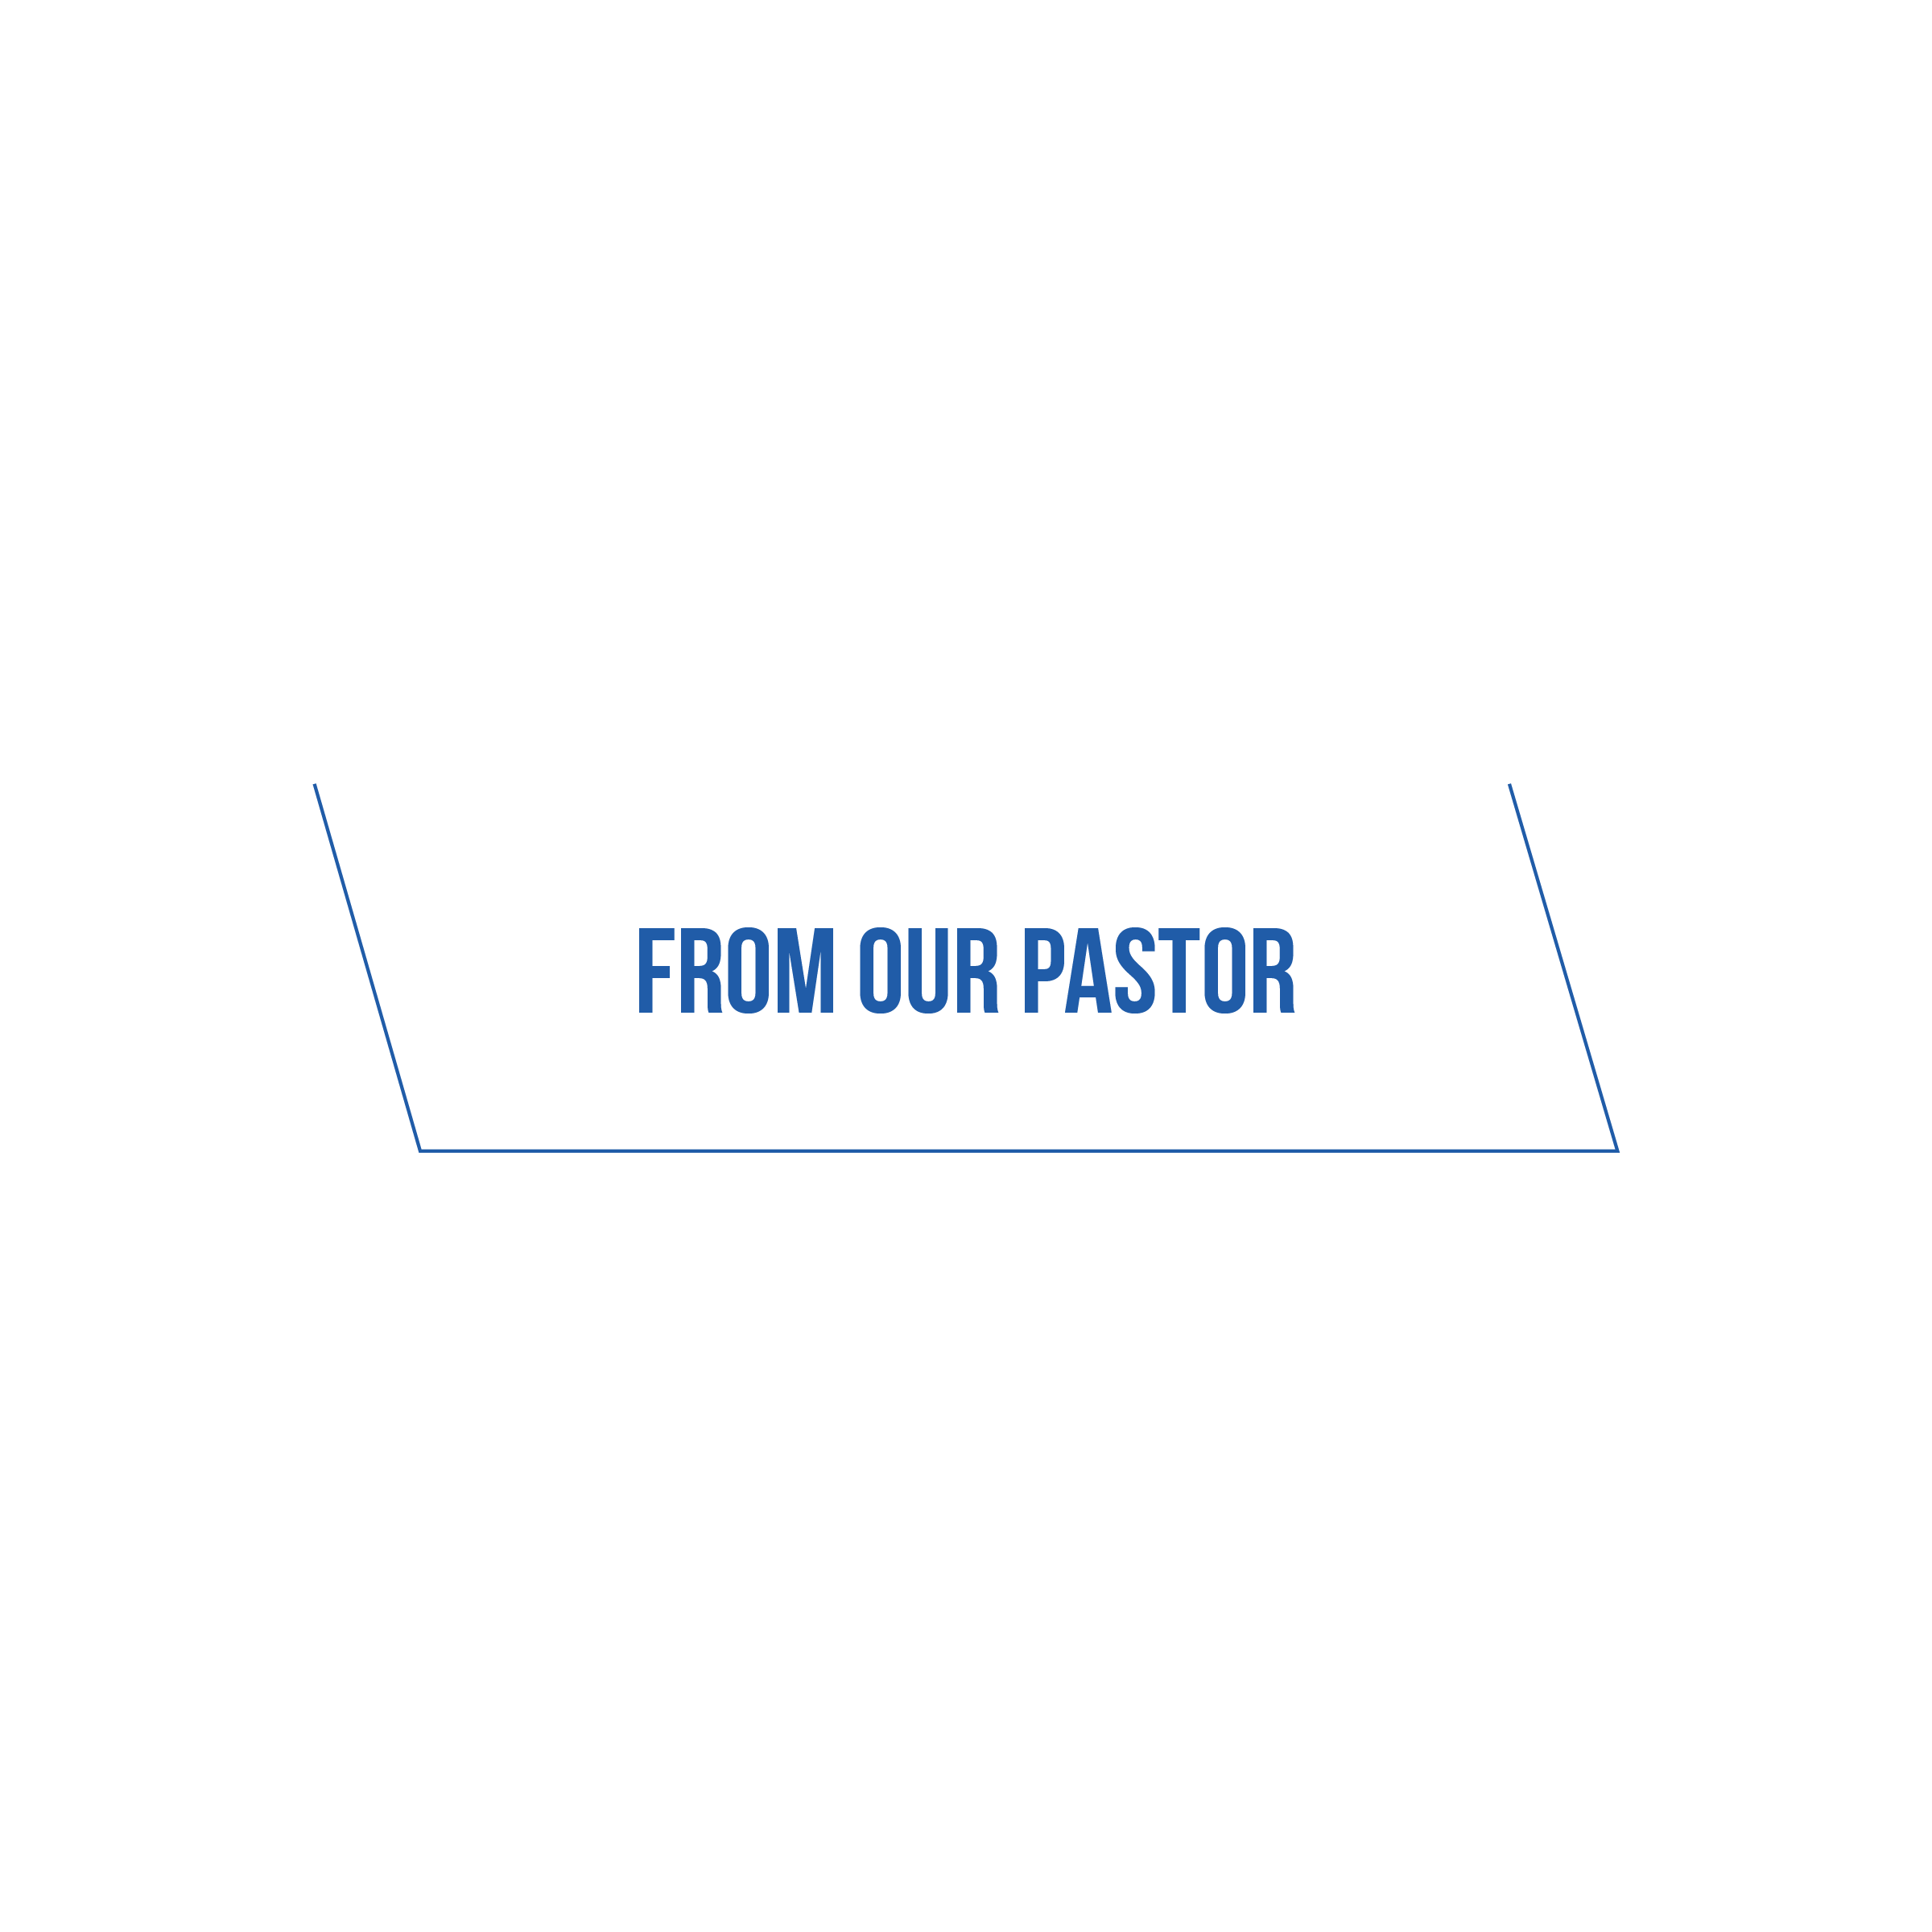 From Our Pastor.png